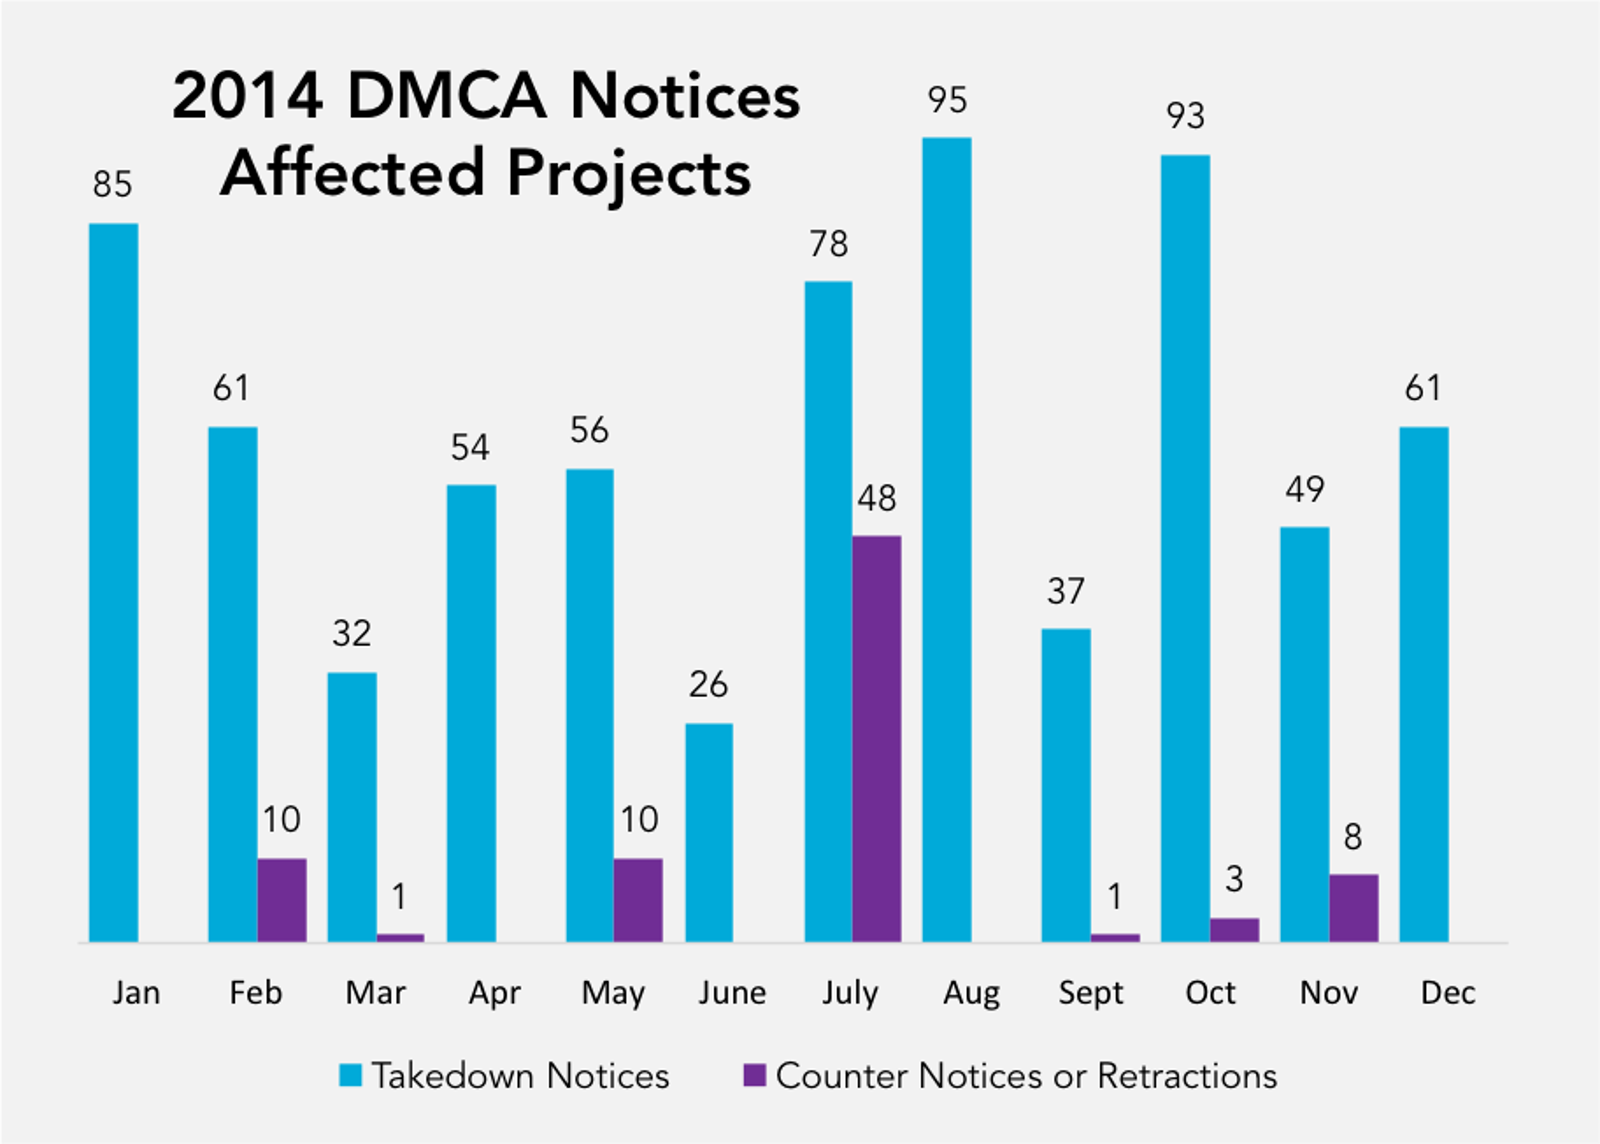 Total Number of Projects Affected by DMCA Notices, Counter Notices and Retractions by Month